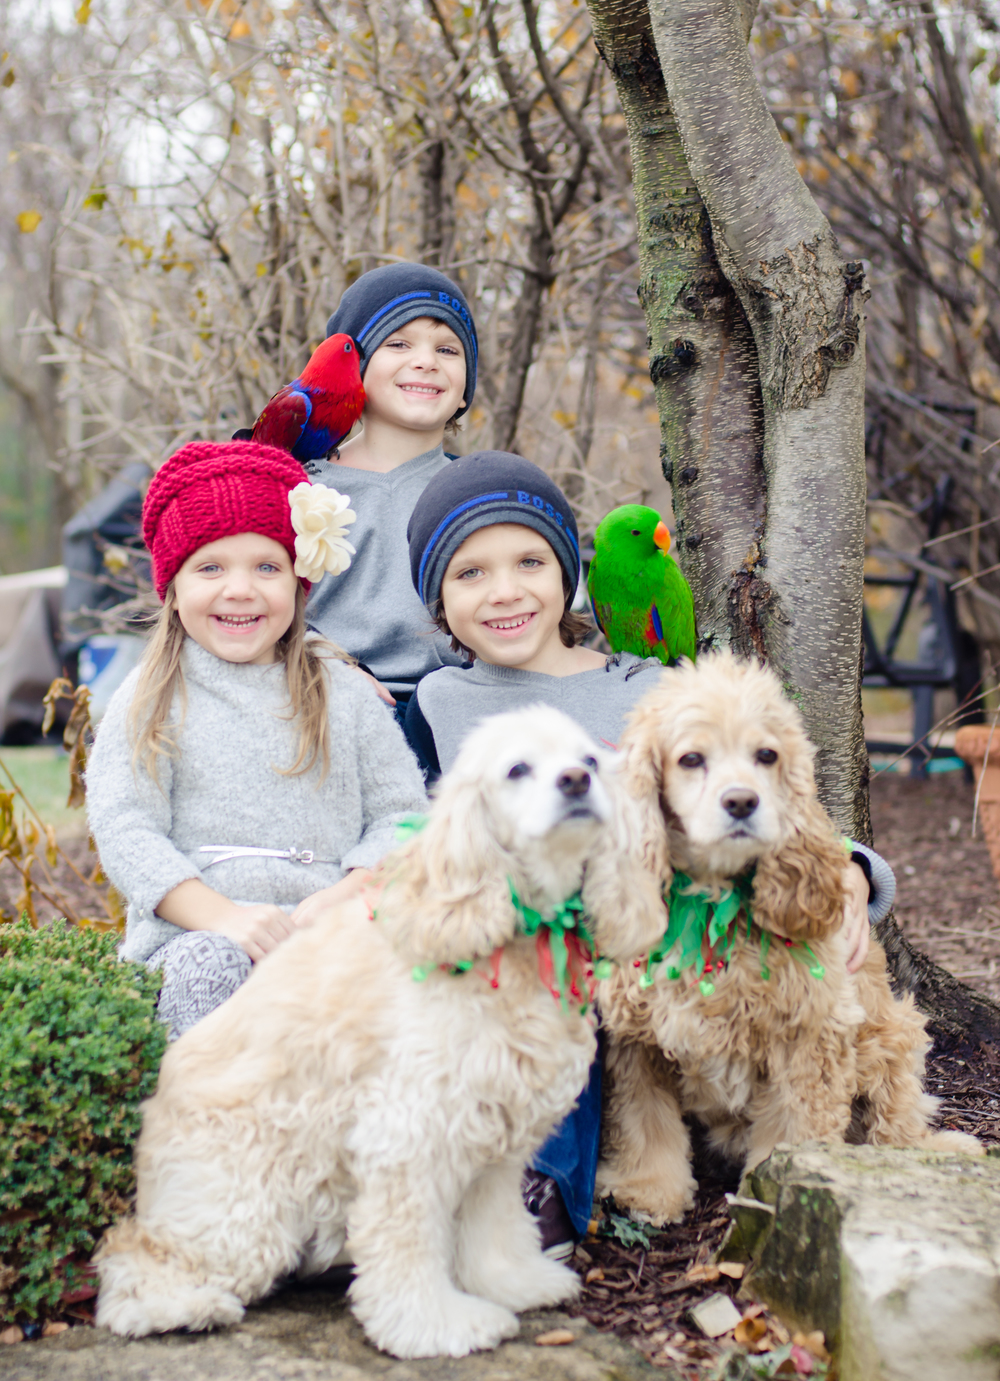 2 dogs, 2 birds and 3 awesome kids, yeah bring it on!! This was a fun shoot. Great family and such cool laid back parents.